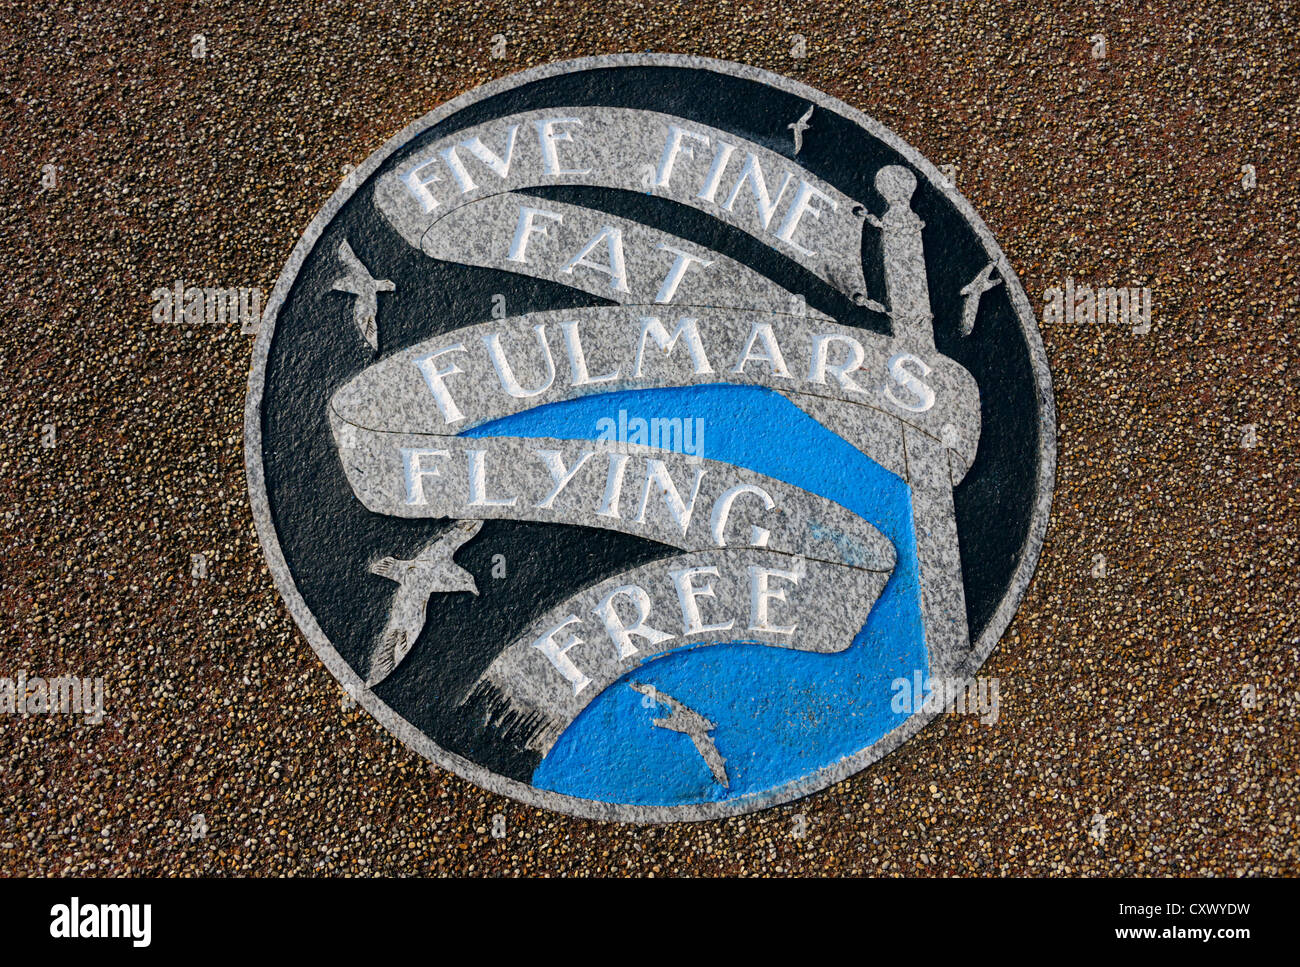 'FIVE FINE FAT FULMARS FLYING FREE'. The Tern Project, The Stone Jetty, Morecambe, Lancashire, England, - Stock Image